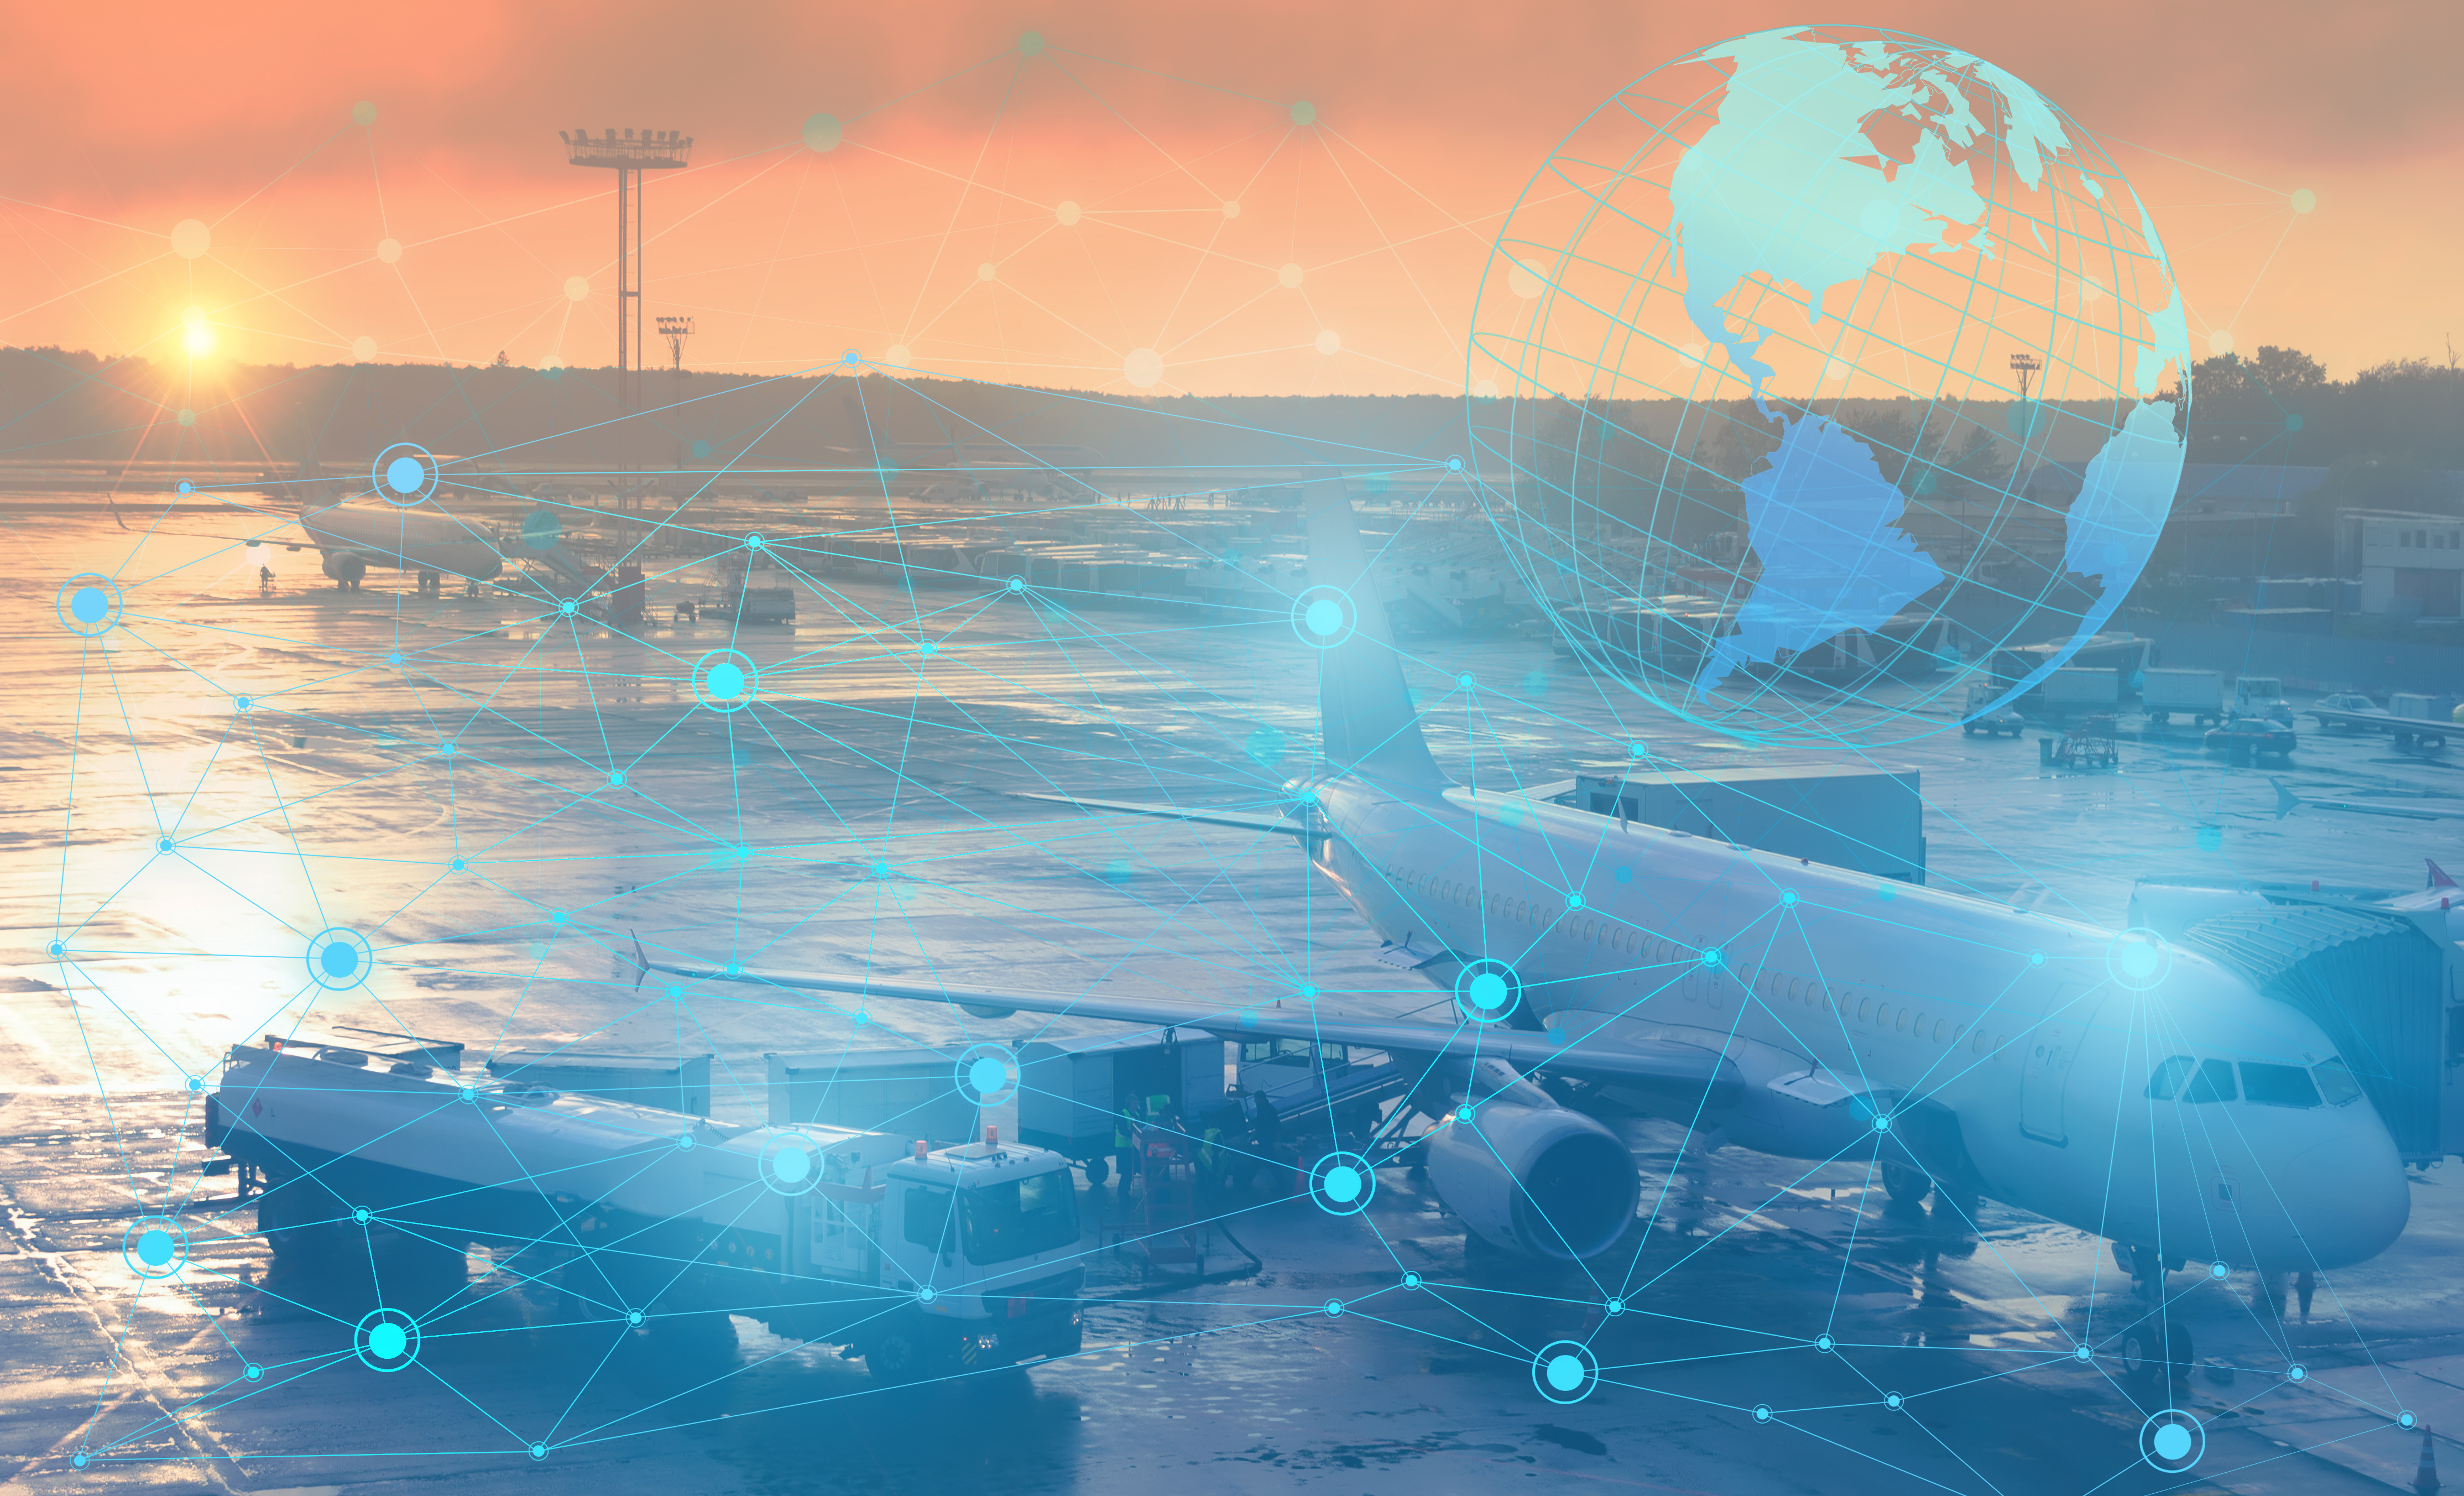 preflight preparation of the aircraft for departure. Conceptual representation of the use of modern technology and artificial intelligence to prepare the aircraft without human intervention